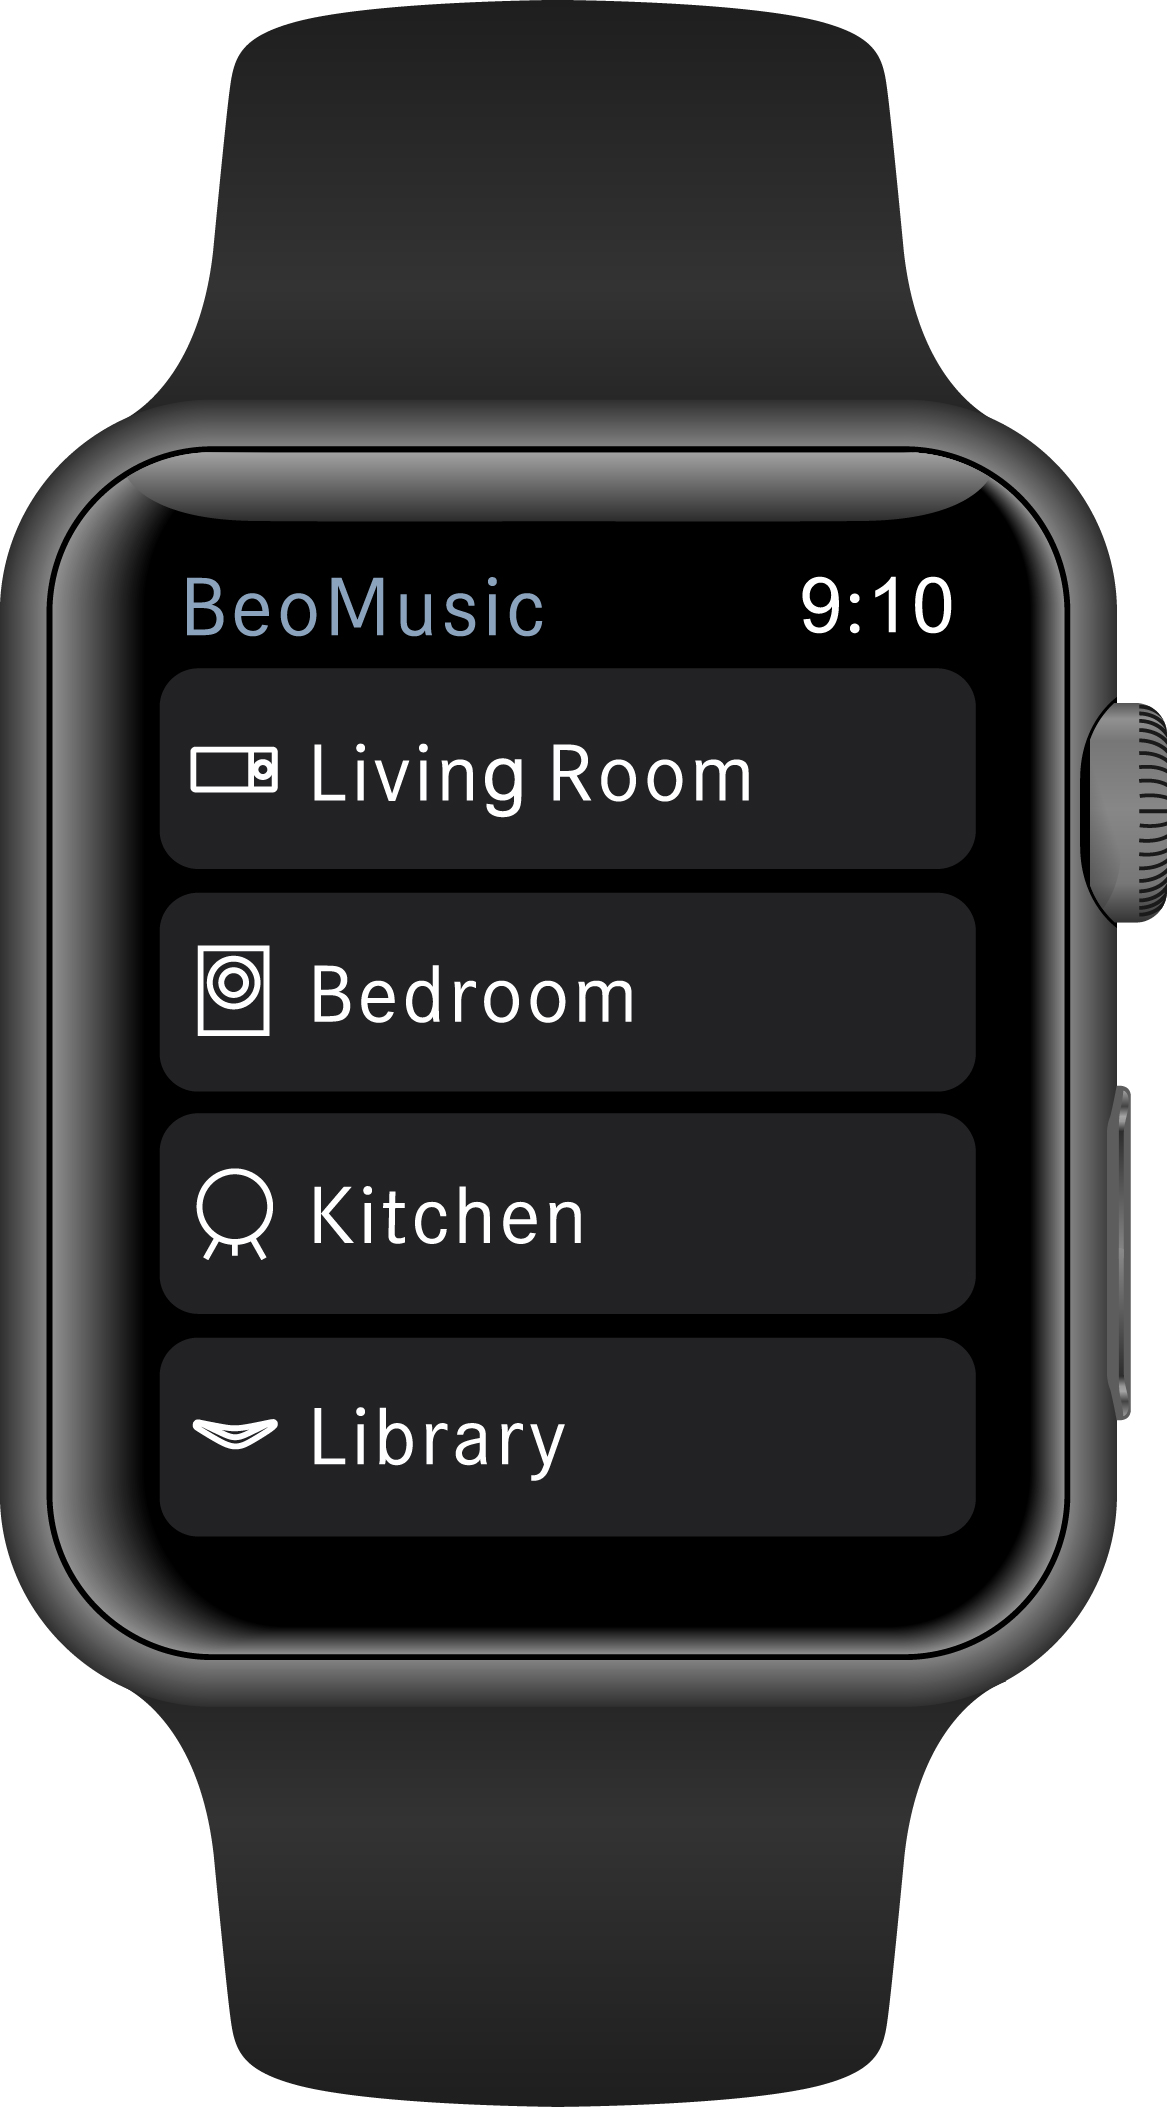 Bang & Olufsen BeoMusic App er klar til Apple Watch